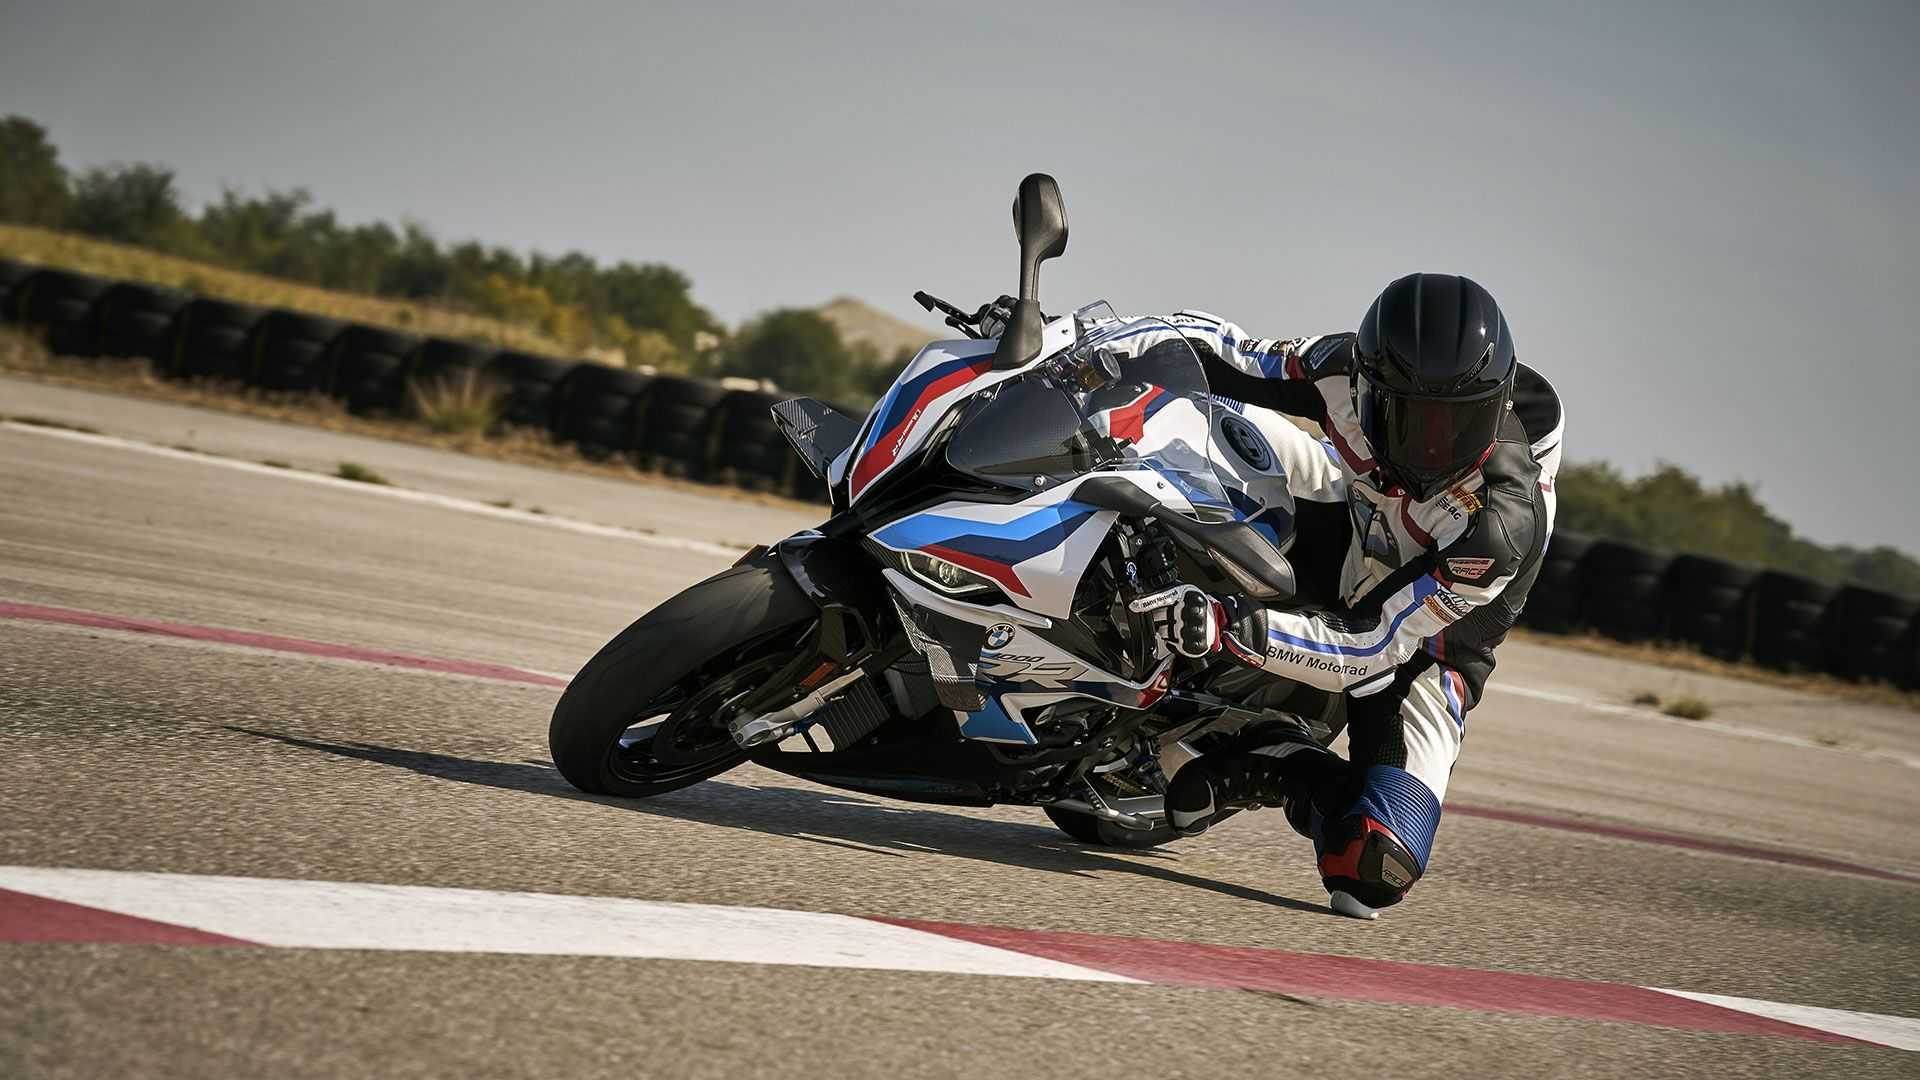 BMW M 1000 RR, Action, Lean Left